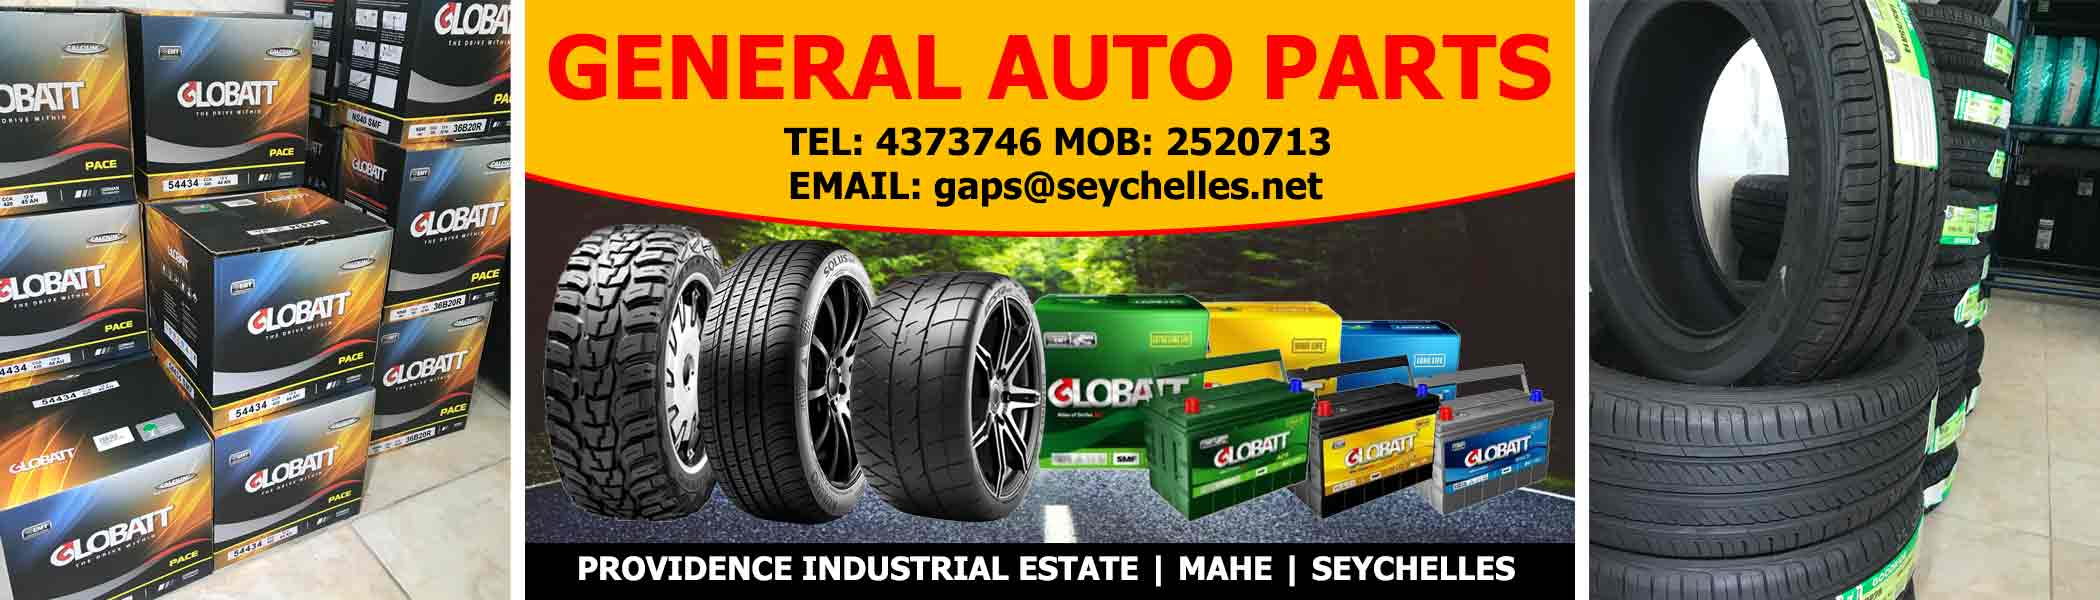 general-autoparts, Automobile in Seychelles Islands